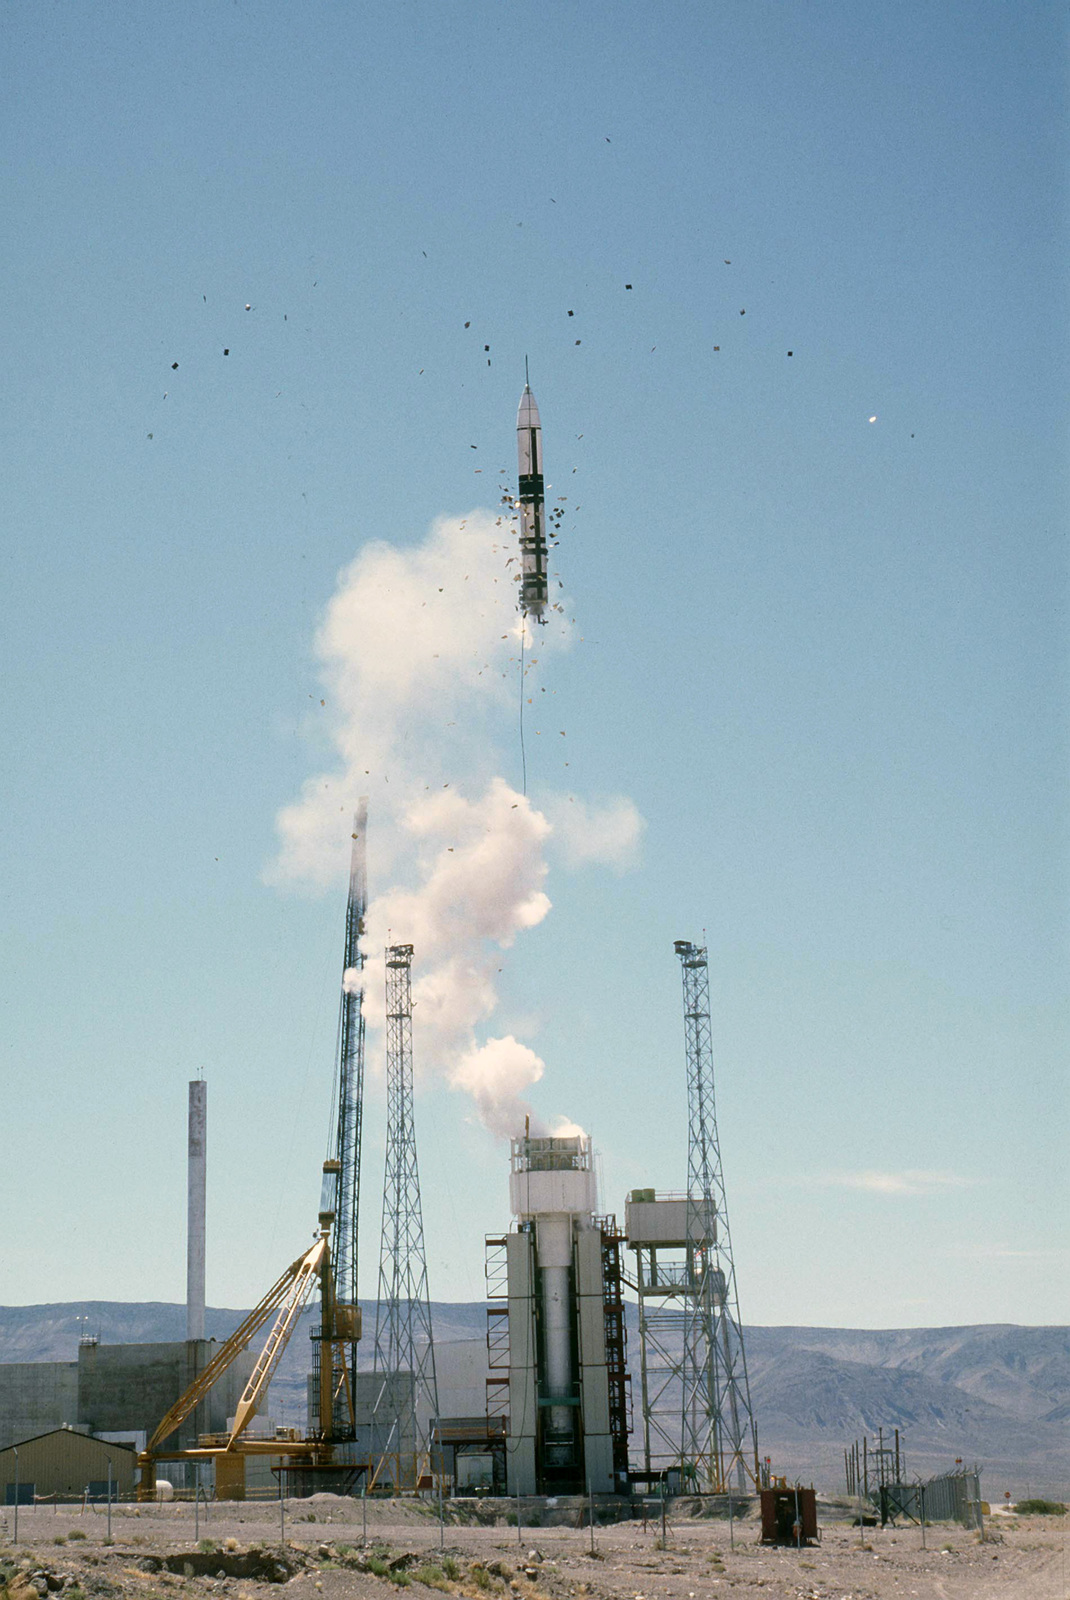 An LGM-118A Peacekeeper intercontinental ballistic missile is ejected from a launch canister during a test launch. (Third view in a series of four)